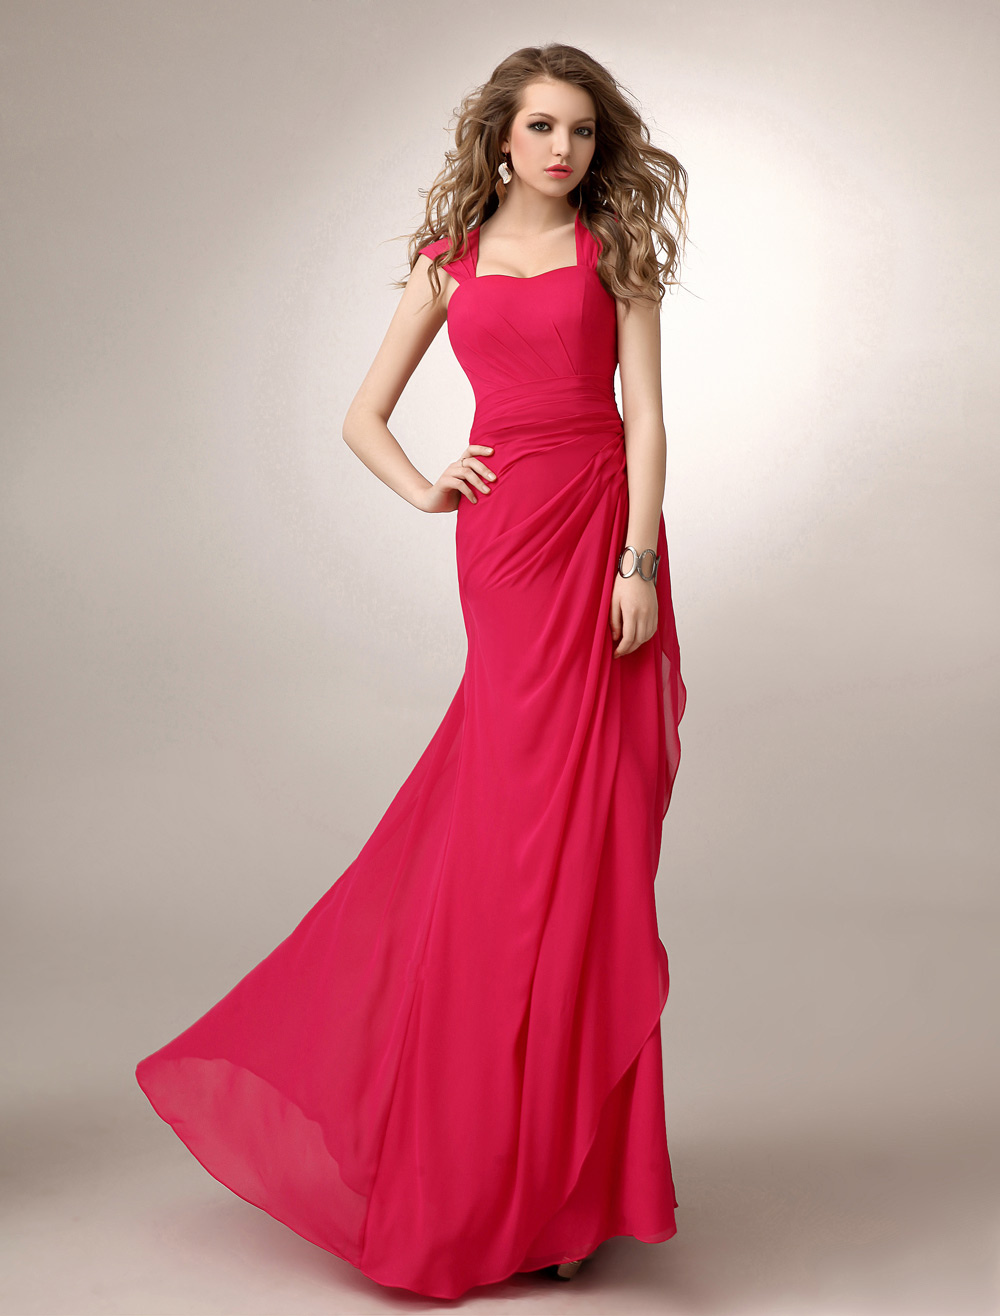 Coral Chiffon Bridesmaid Dress Straps Ruched A Line Sweetheart Neck Floor-Length Wedding Party Dress